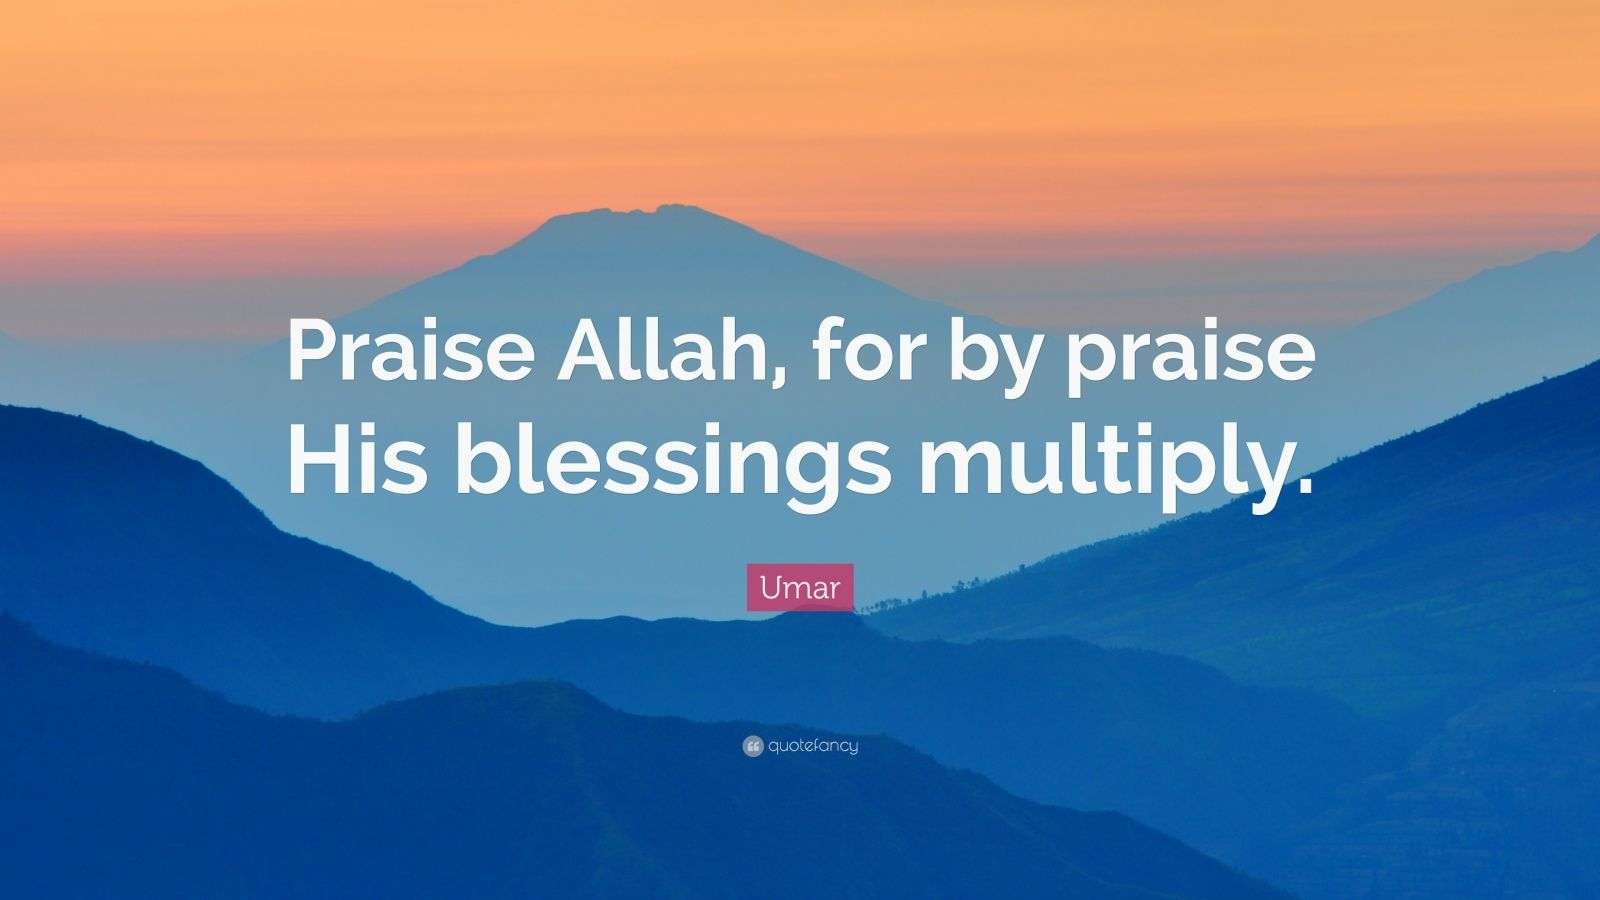 """Umar Quote: """"Praise Allah, for by praise His blessings multiply."""""""